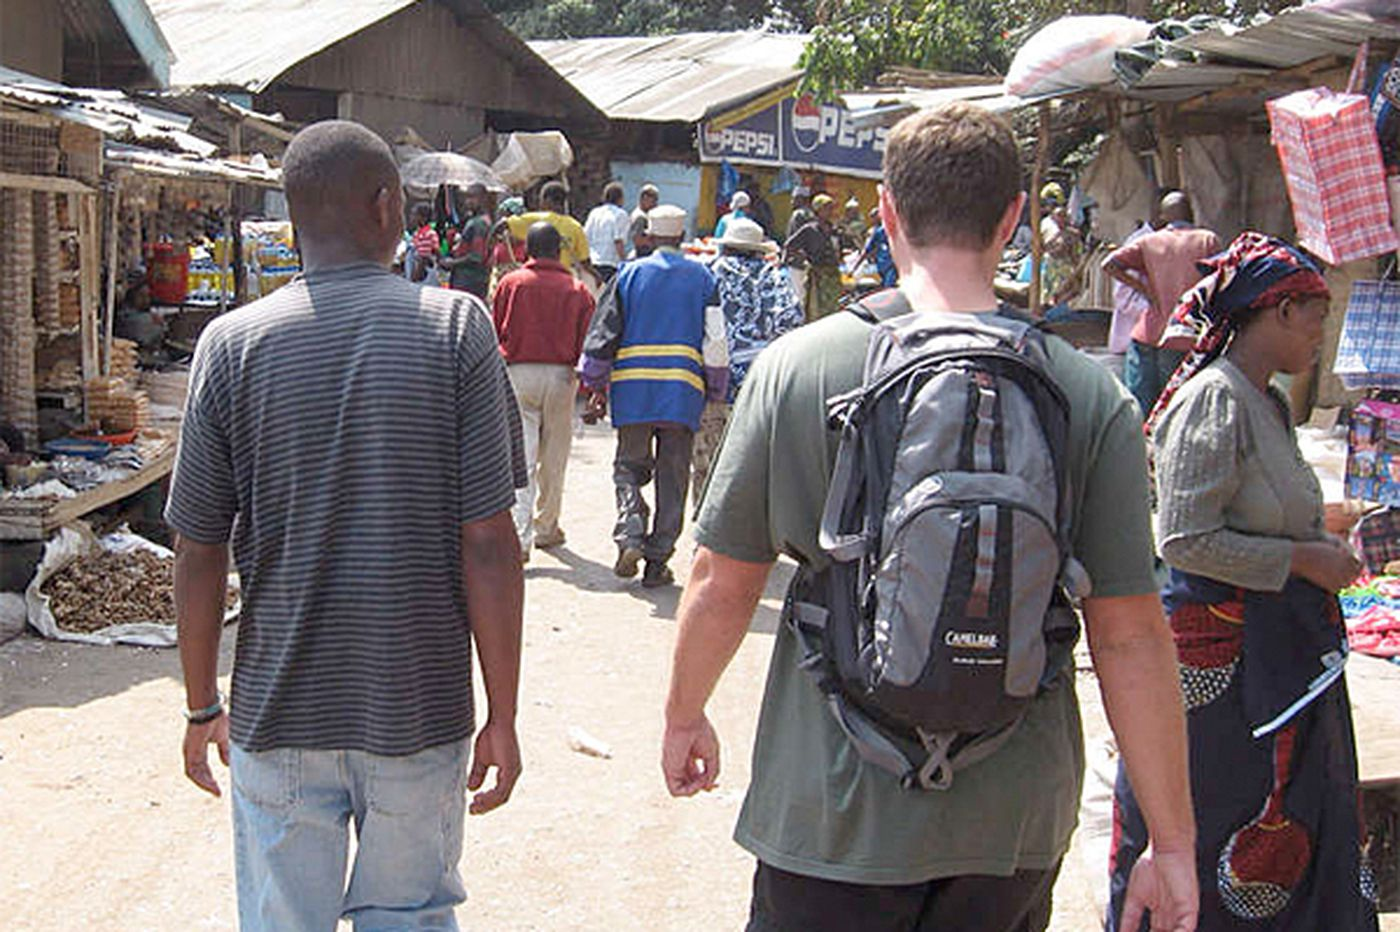 Personal Journey: In Tanzania, a sudden stab of murky suspicion